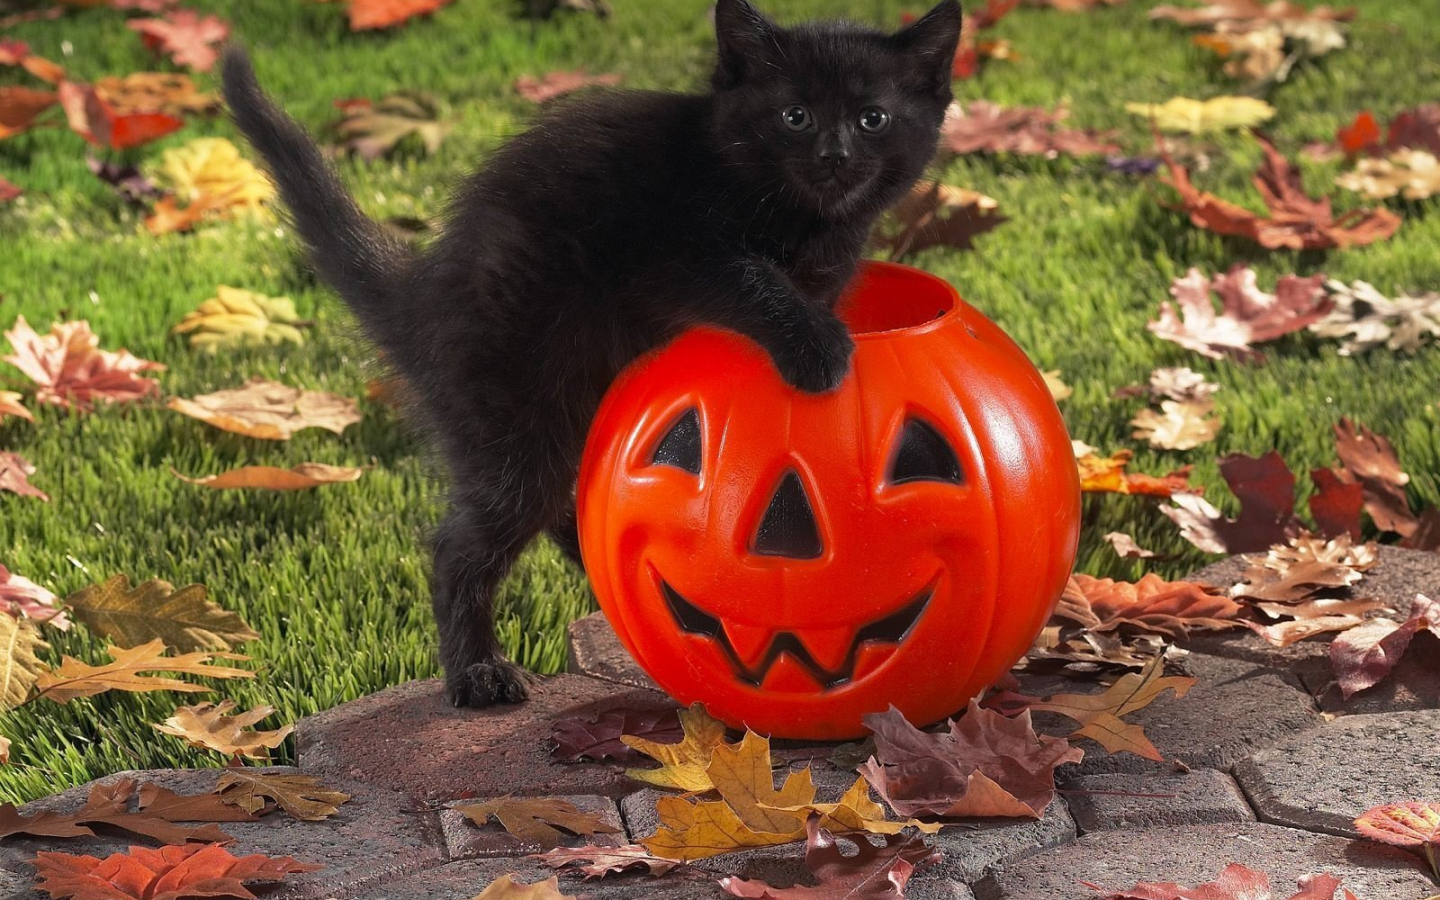 Free Download Black Cat Celebrates Halloween Wallpapers And Images Wallpapers 1600x1200 For Your Desktop Mobile Tablet Explore 34 Black Cat Halloween Wallpaper Black Cat Wallpapers Free Cute Cat Halloween